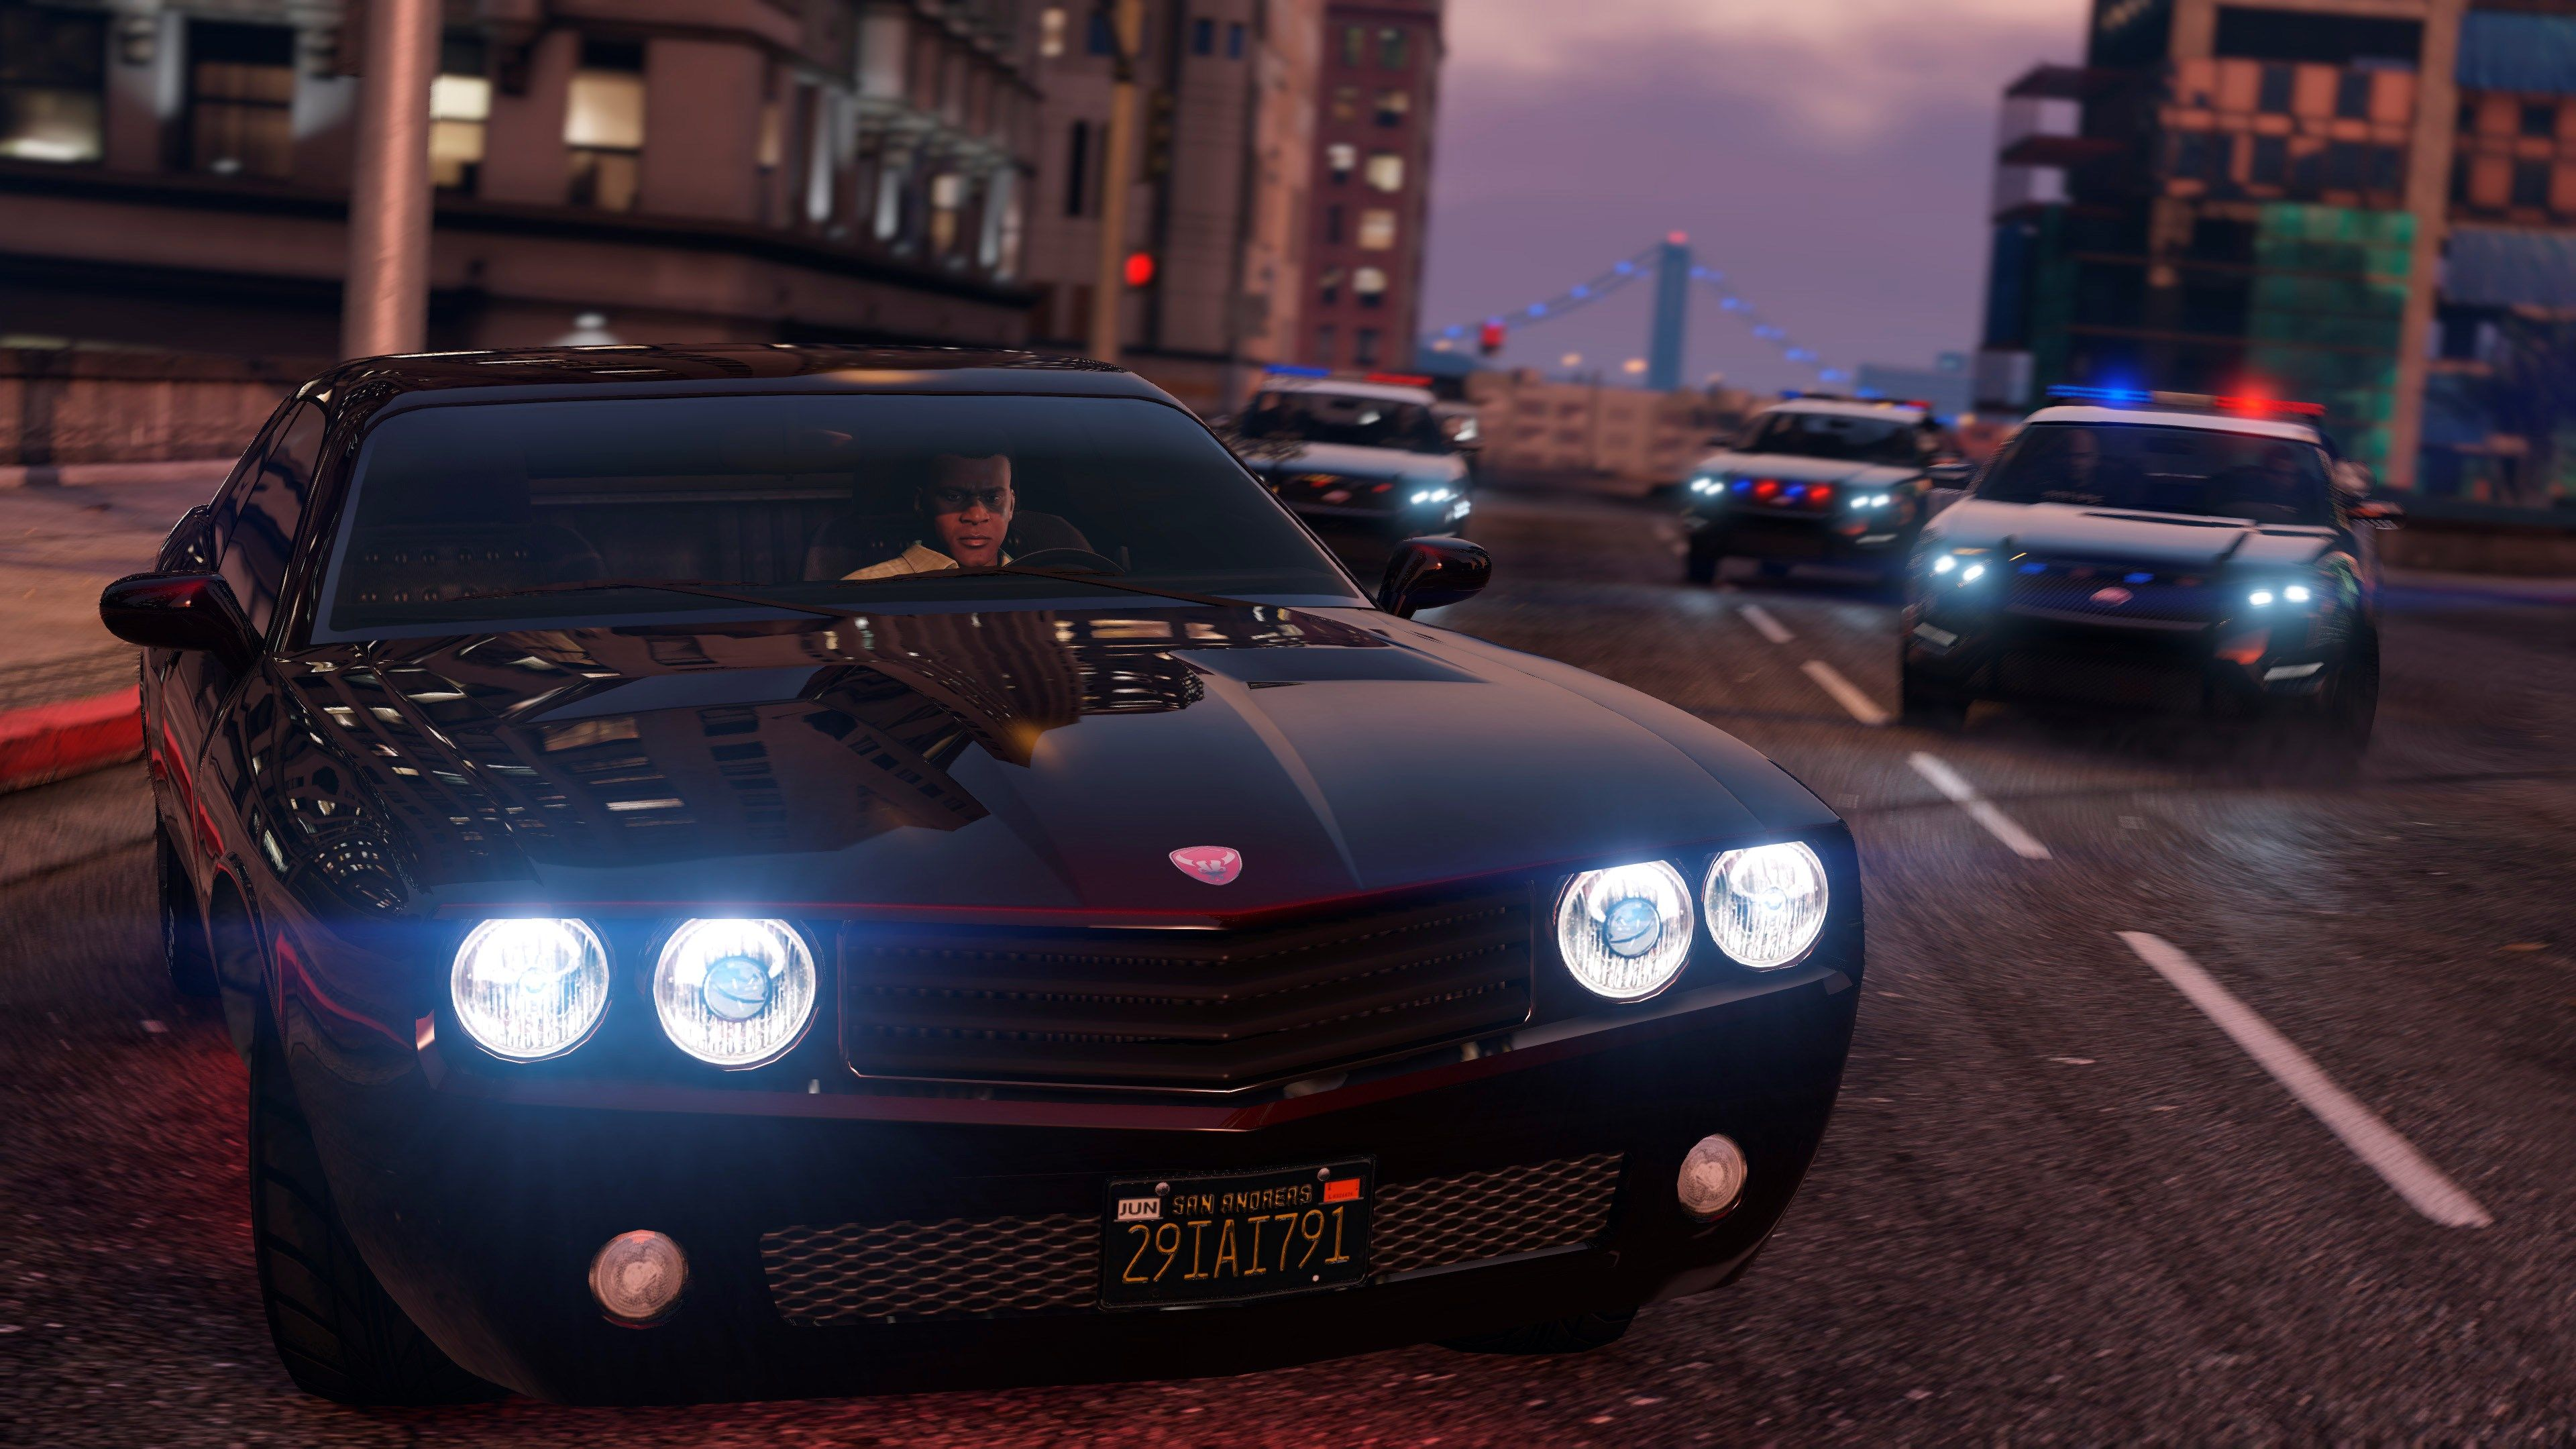 4k Grand Theft Auto V Hd Wallpaper 3840x2160 En 2019